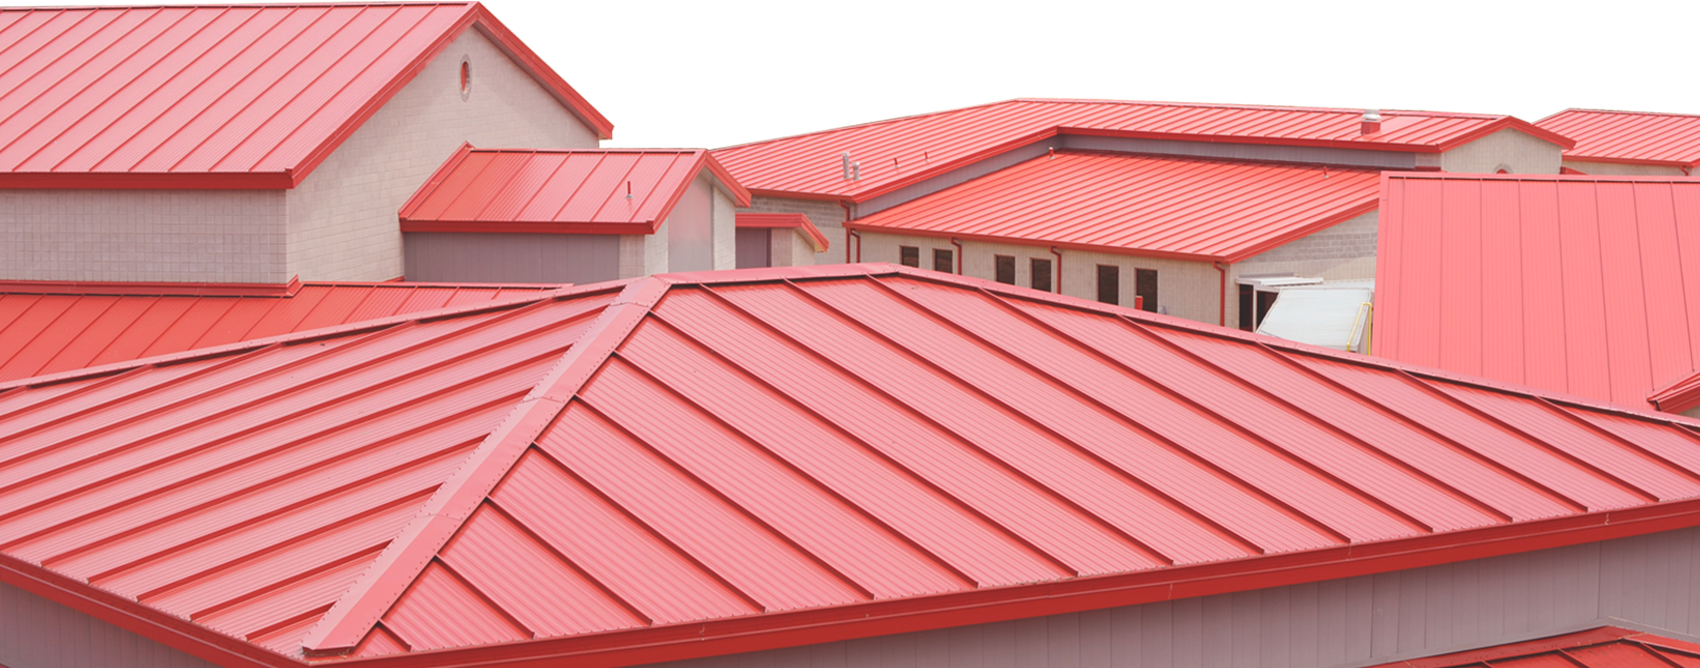 Roofing Sheets in Chennai   Roofing Sheet Prices in Chennai - Part 3